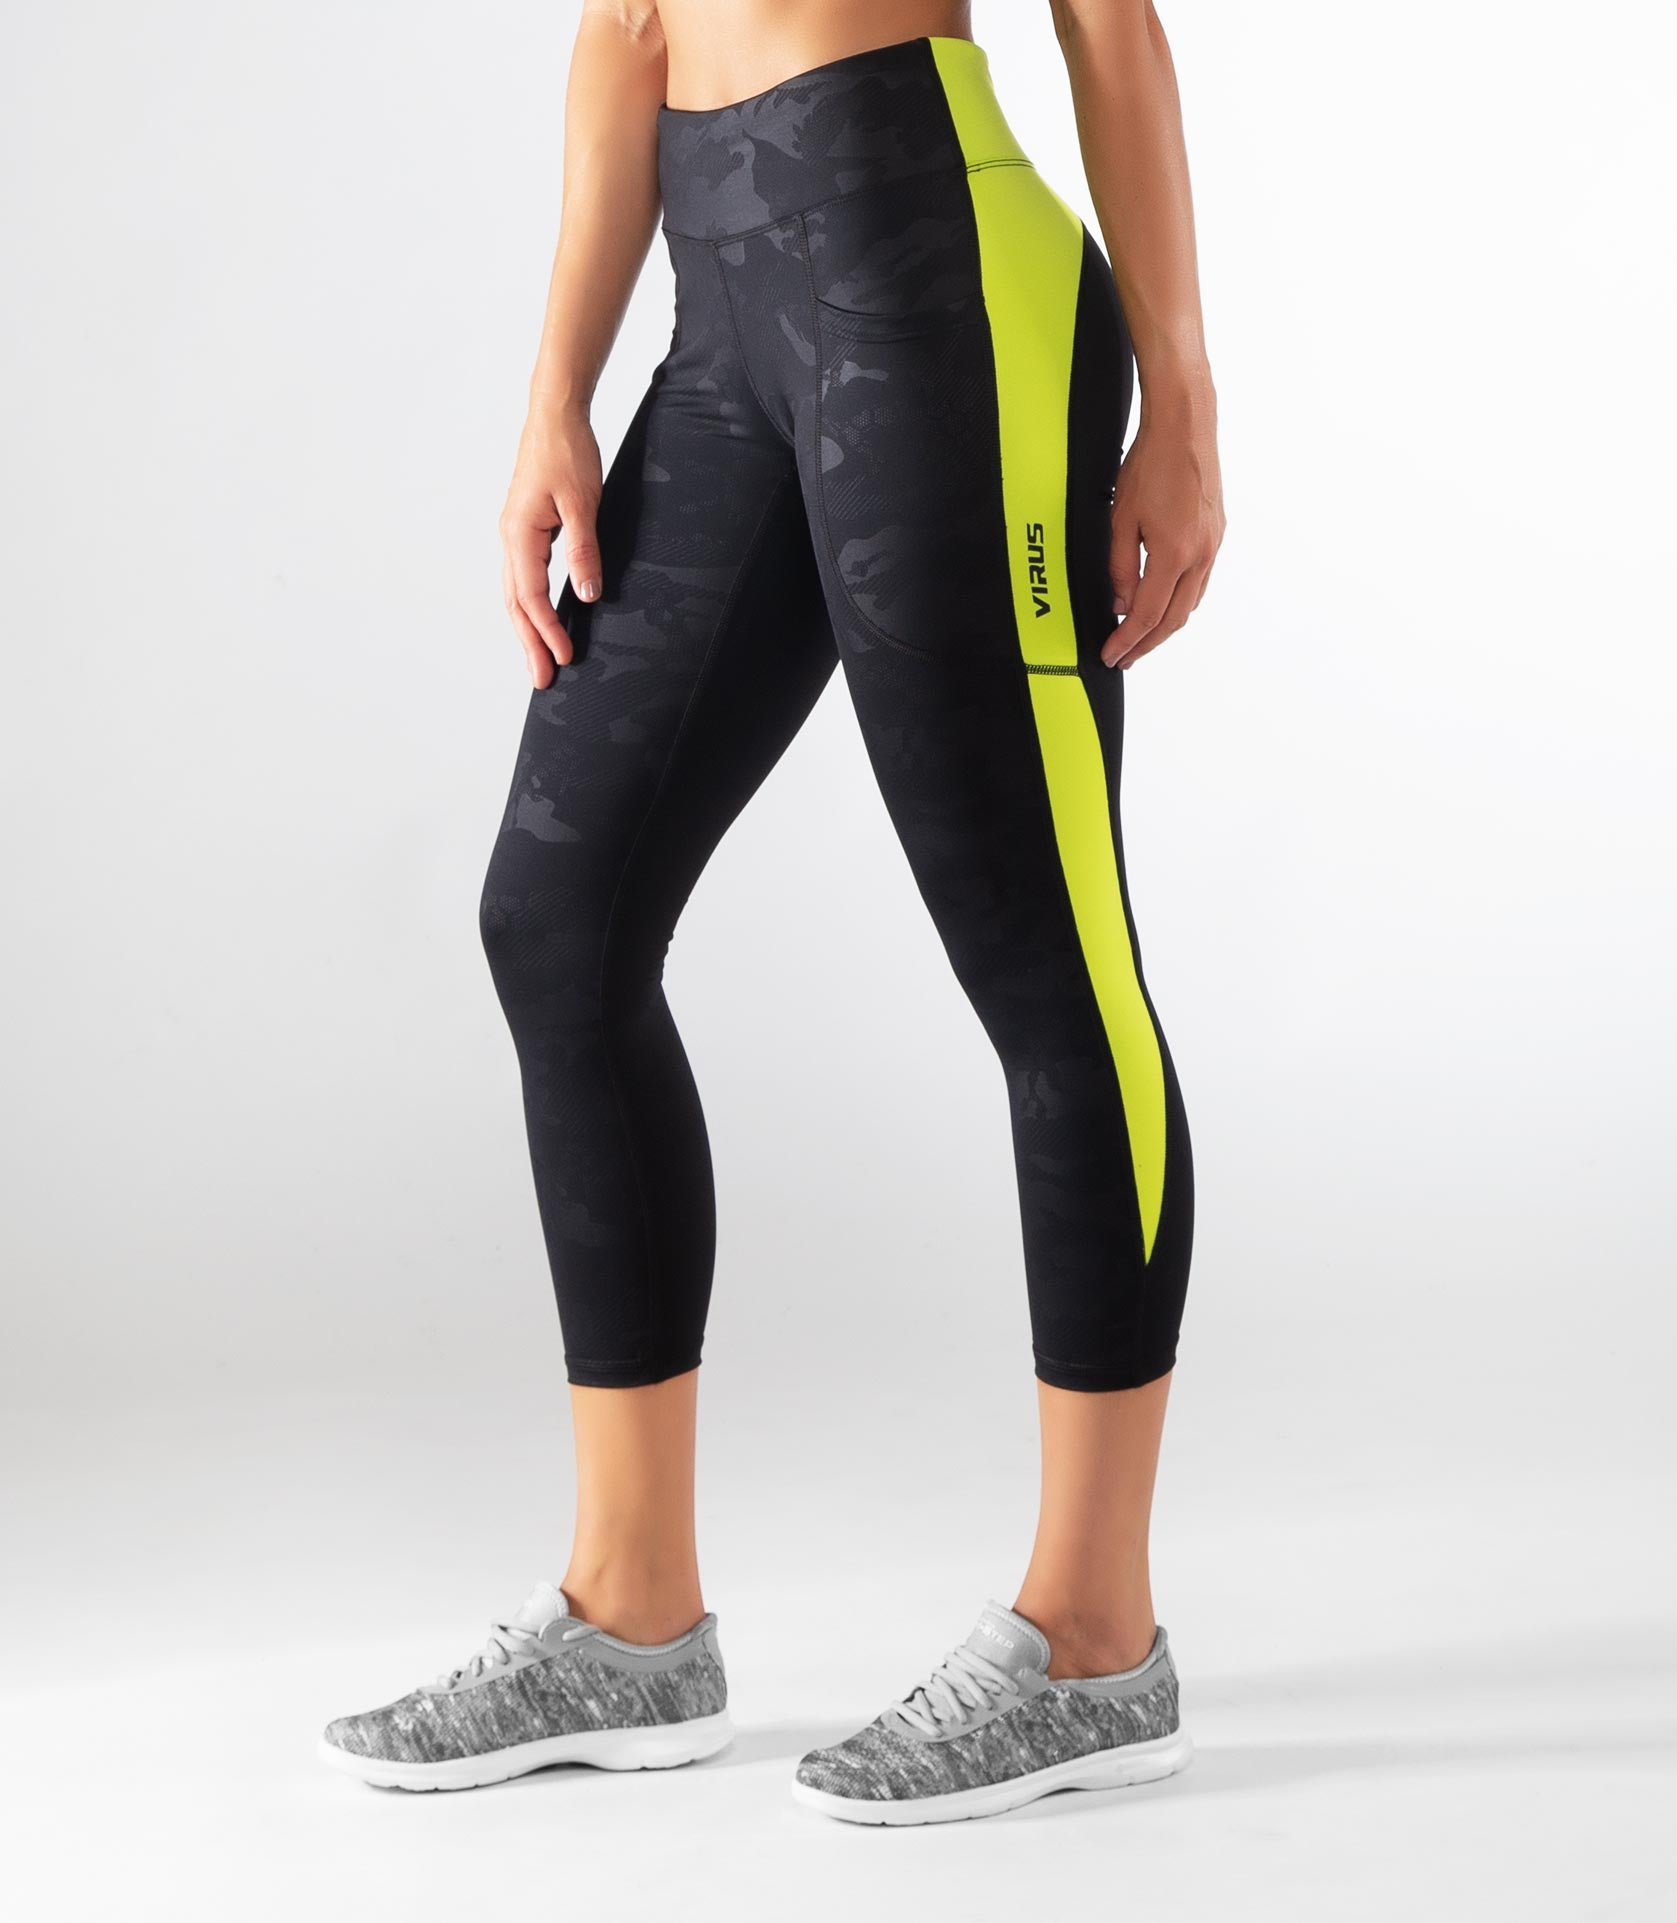 f21419db06 ECo53 | Lux Stay Cool 7/8 Length Pant – VIRUS Performance